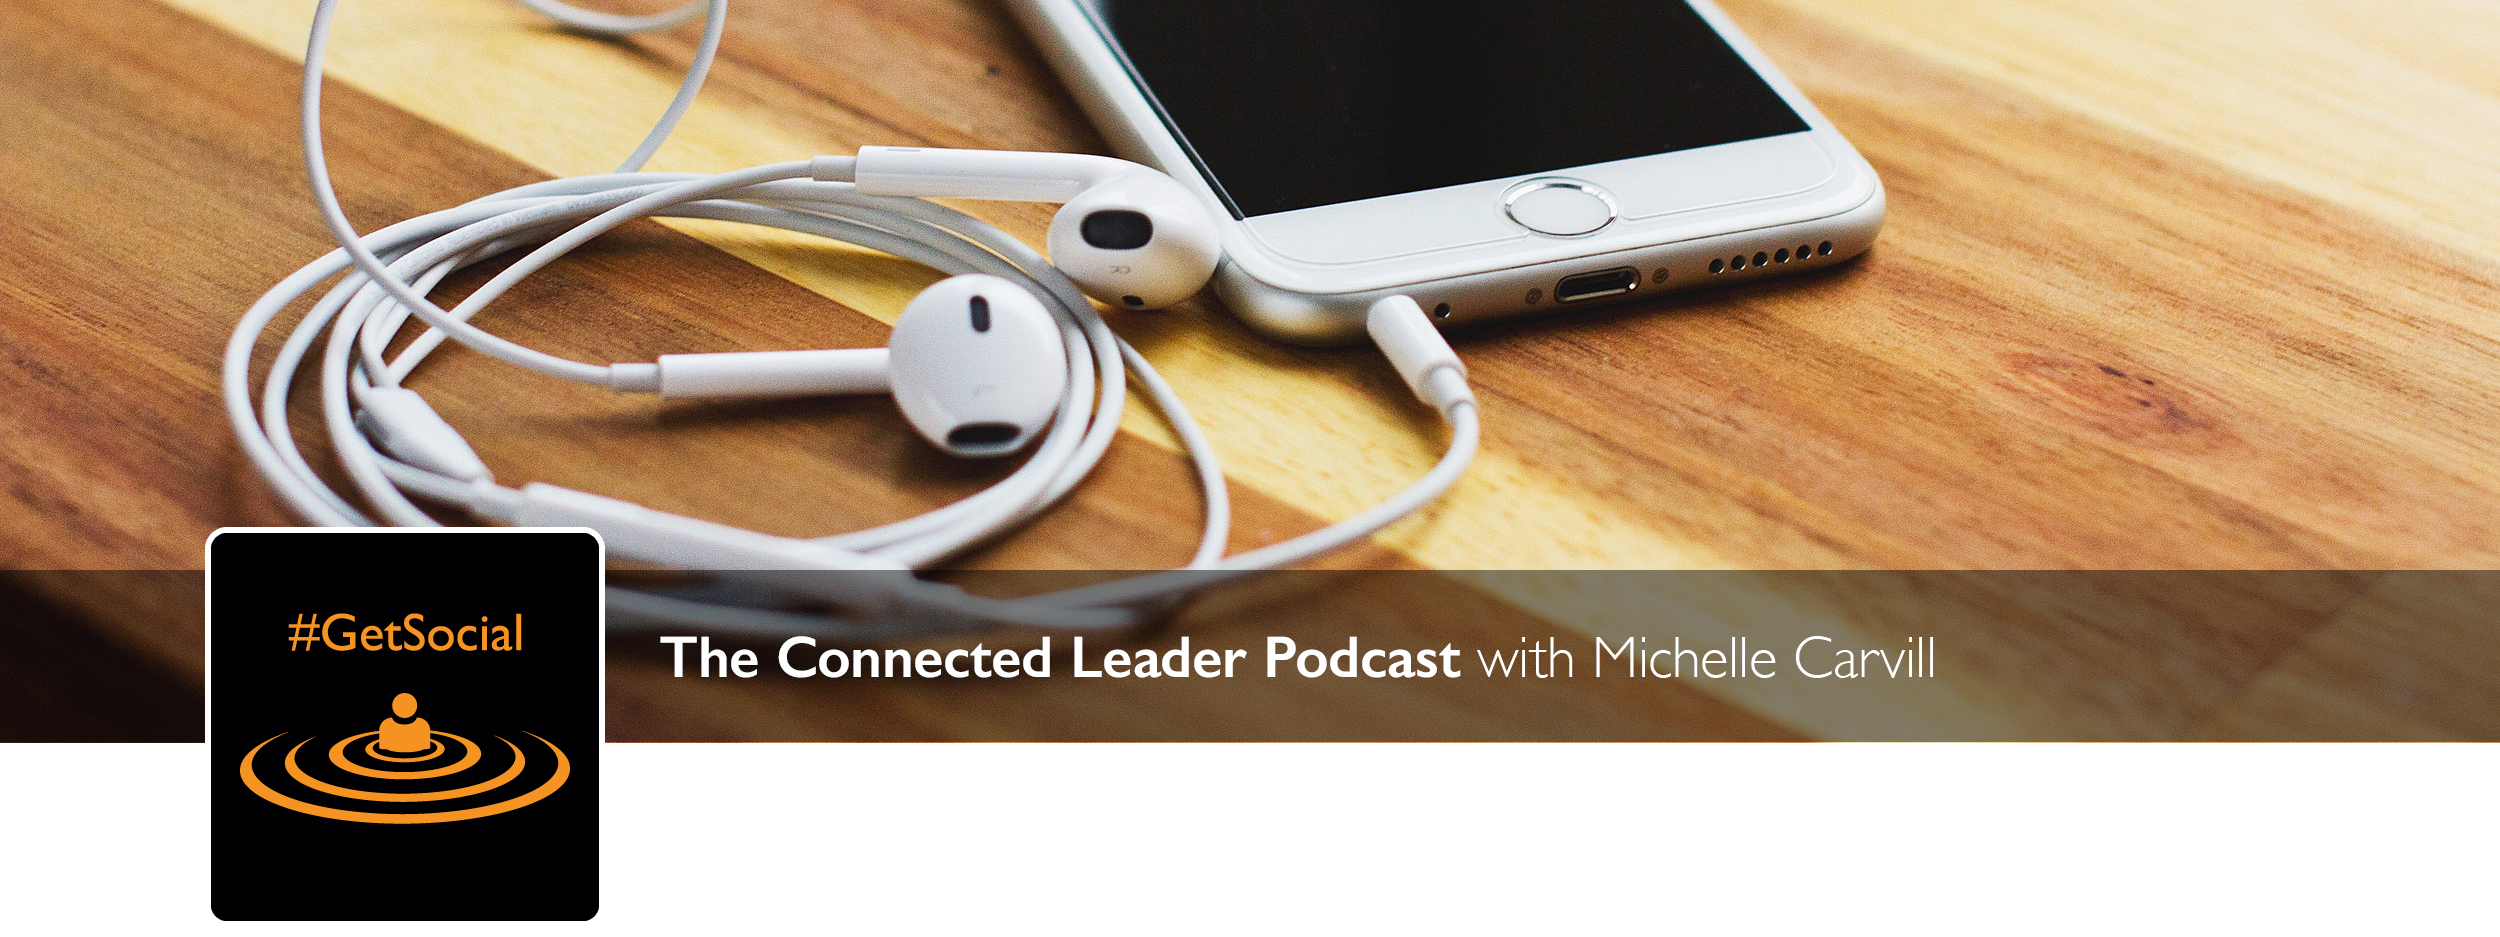 The Connected Leader Podcasts-hero-3.jpg